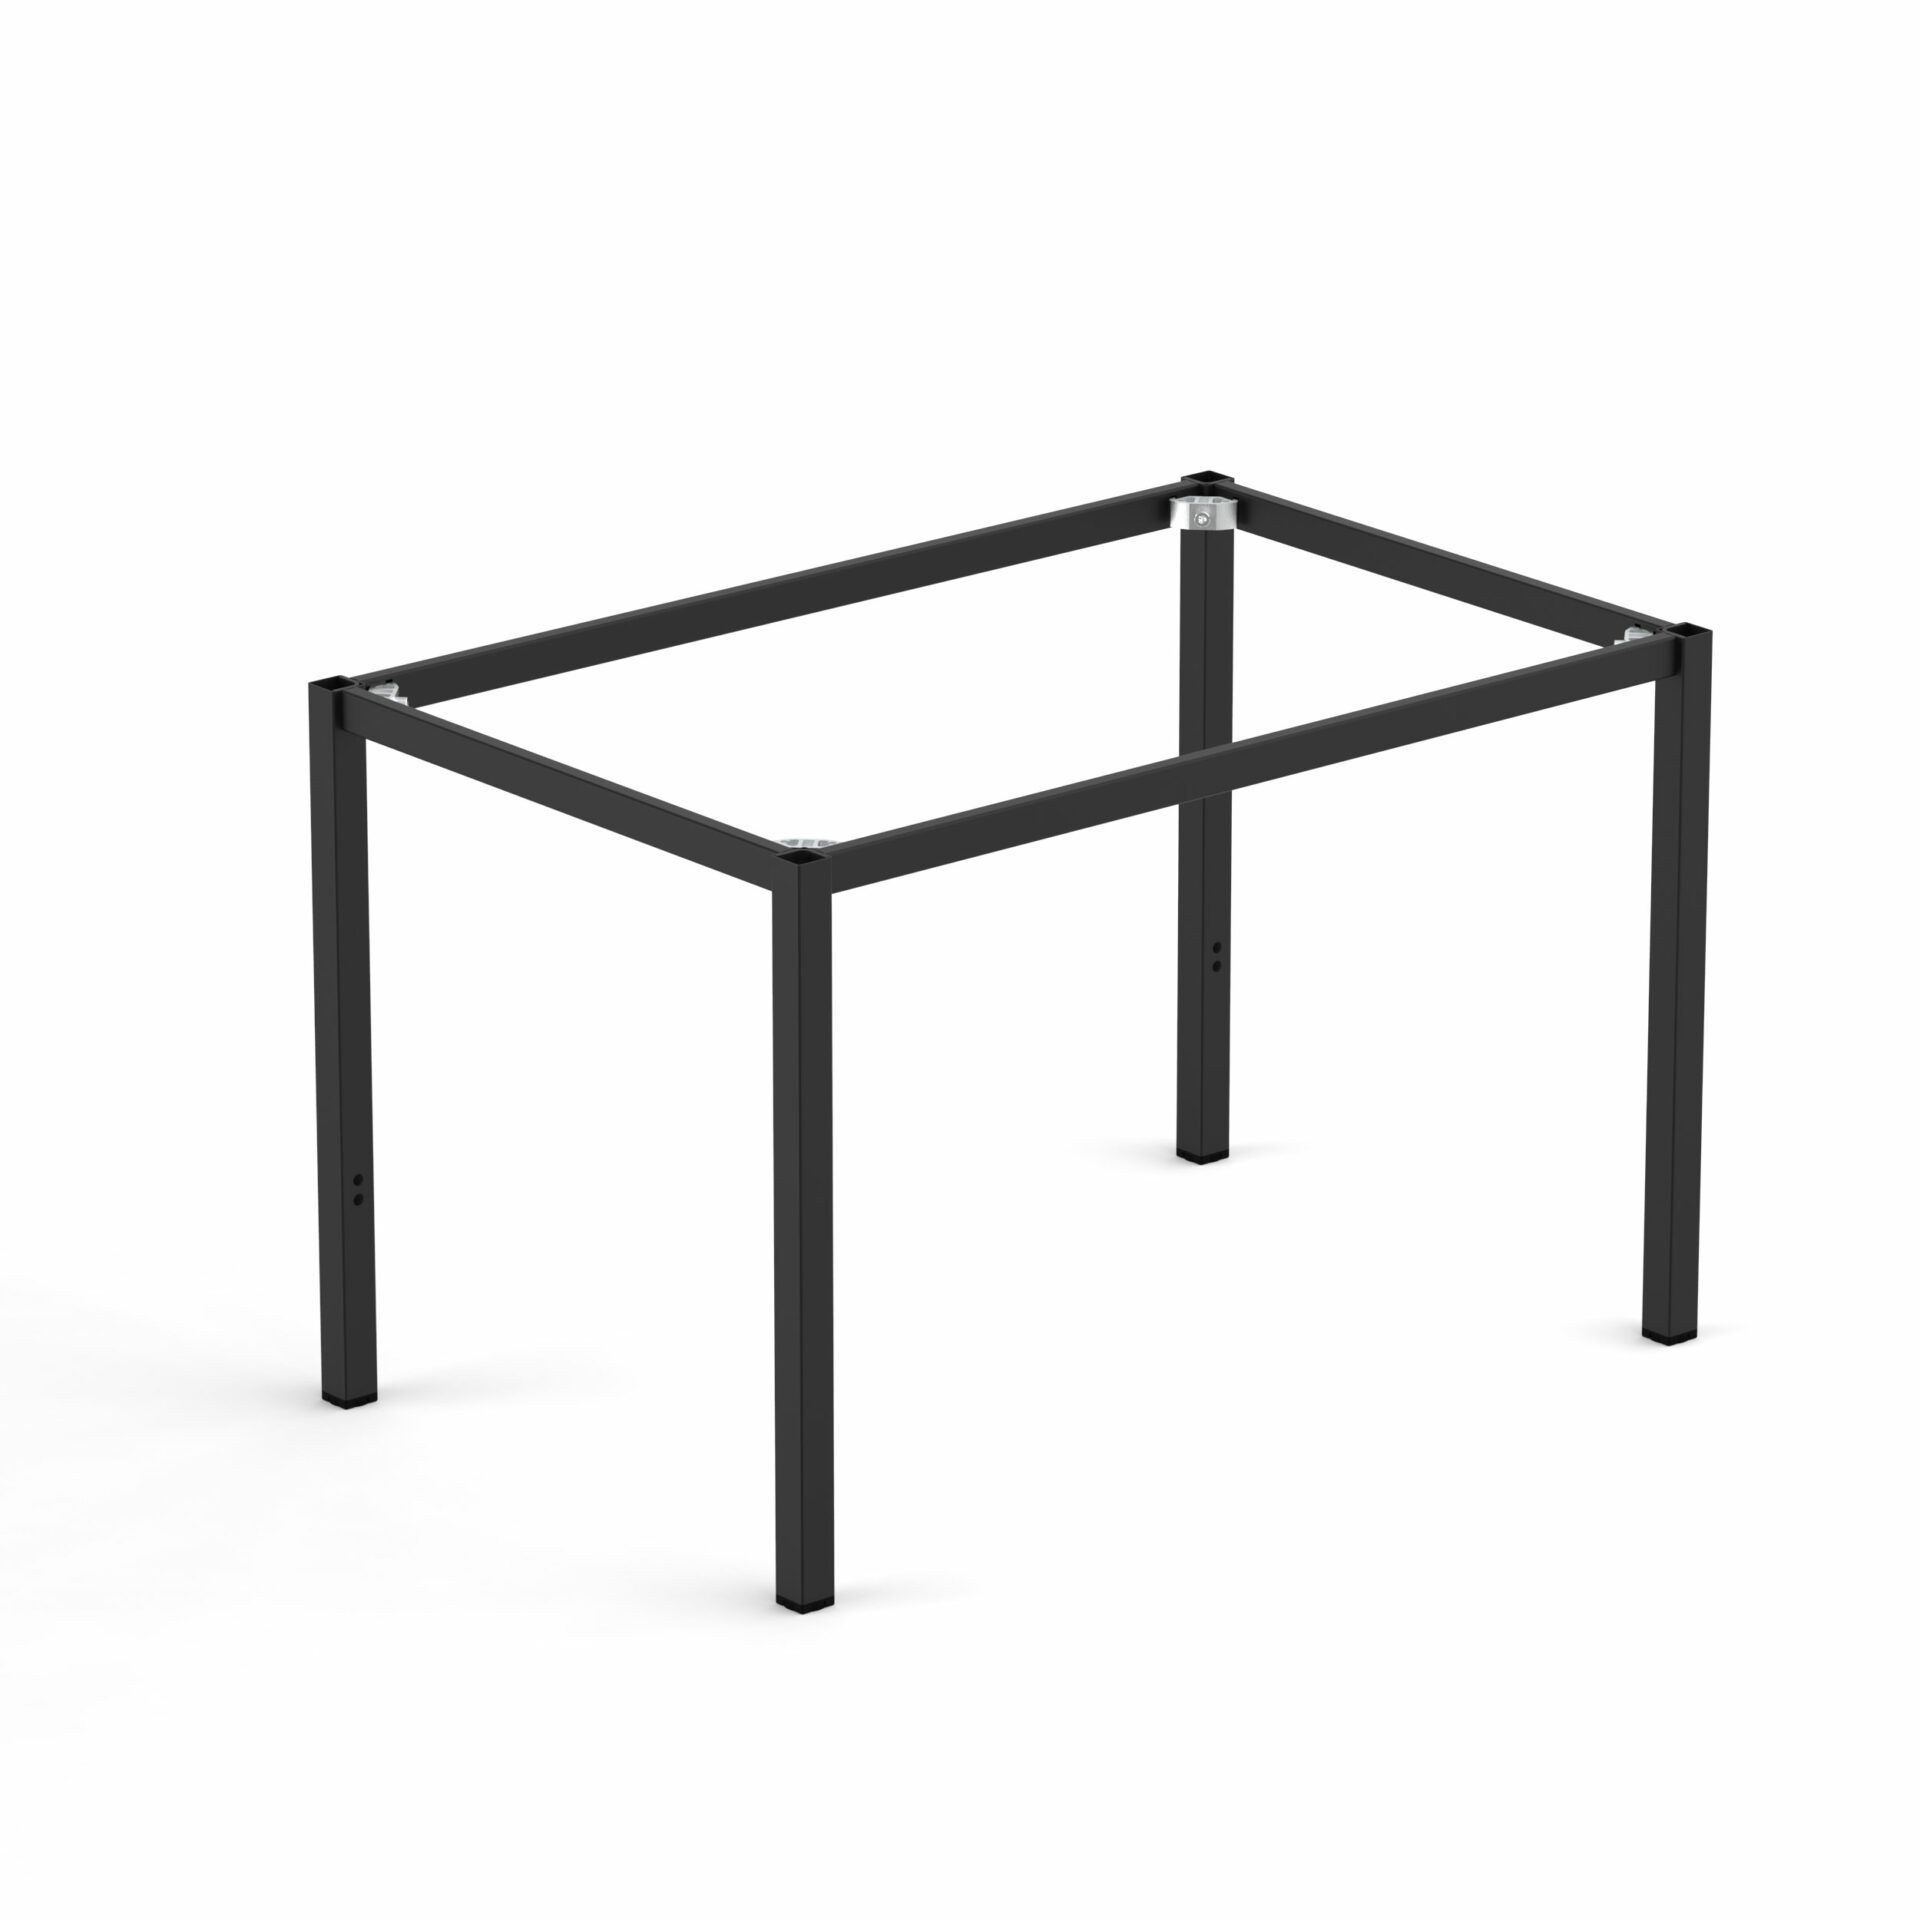 Spire Square leg Table Height Frame 1140 x 390 x 720H